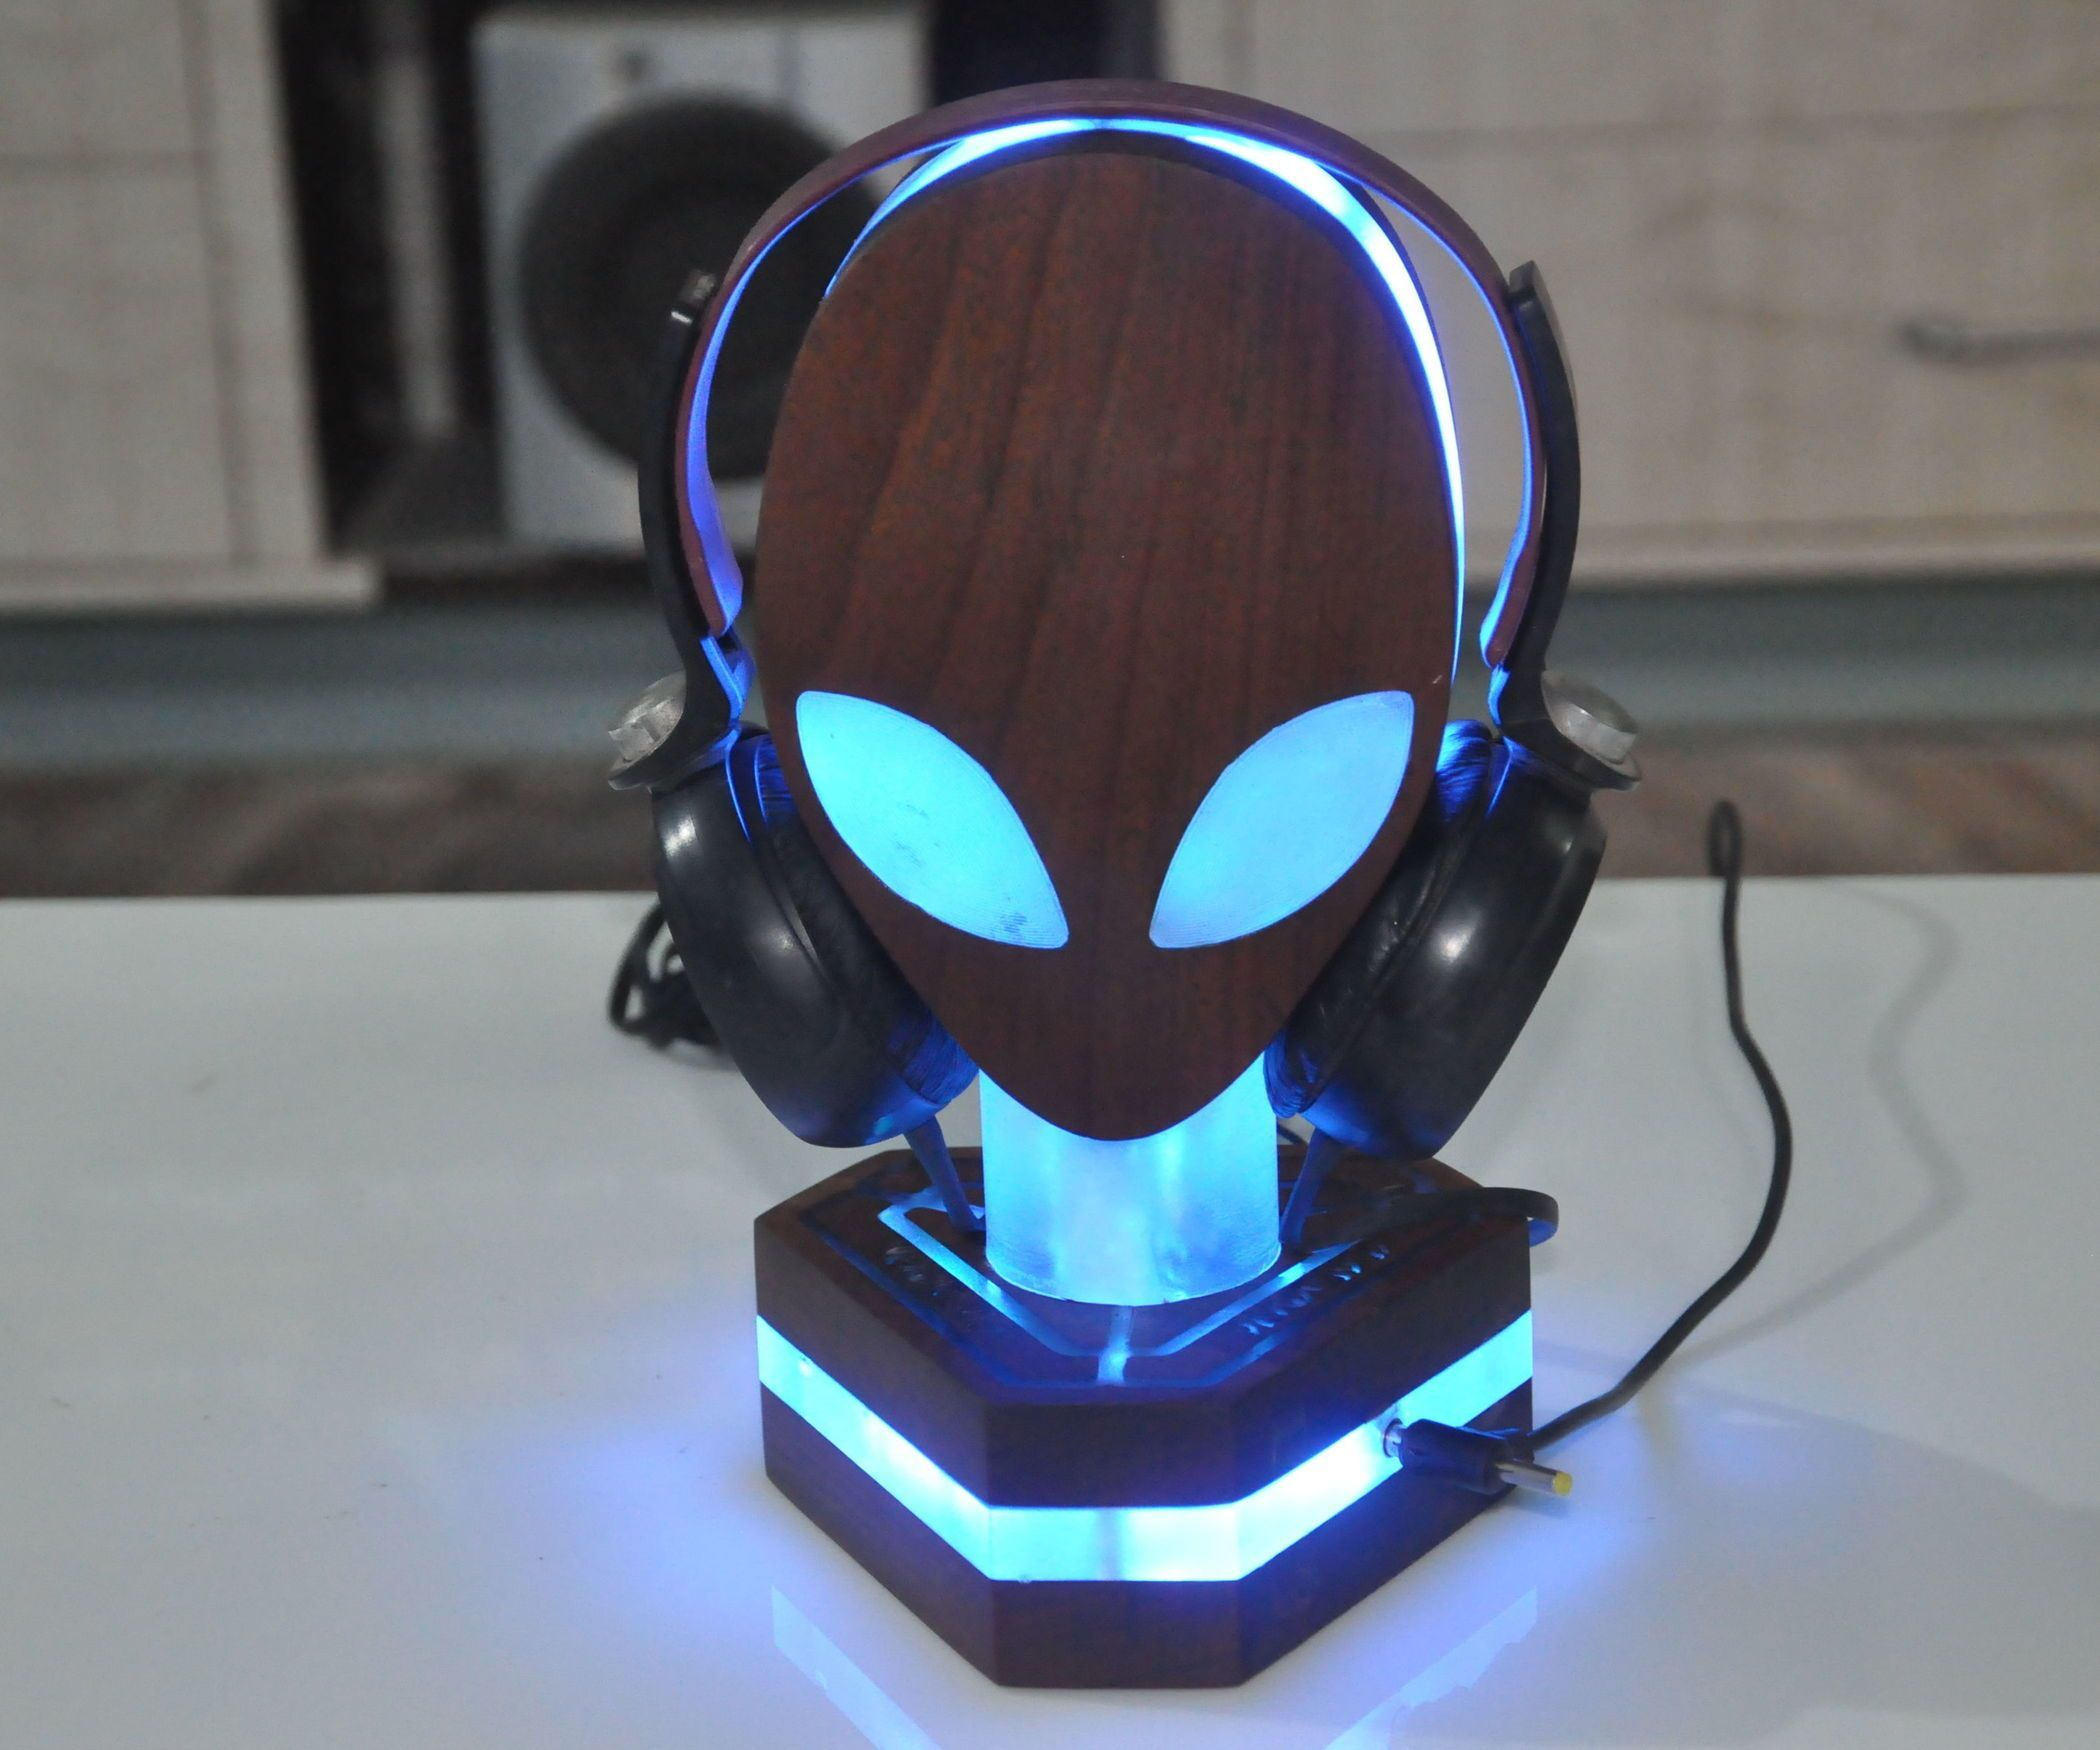 10 Super Creative Diy Headphone Stands Ideas Some Are From Recycled Materials Headphone Handsfreestand Diy Headphone Stand Diy Headphones Headphone Stands